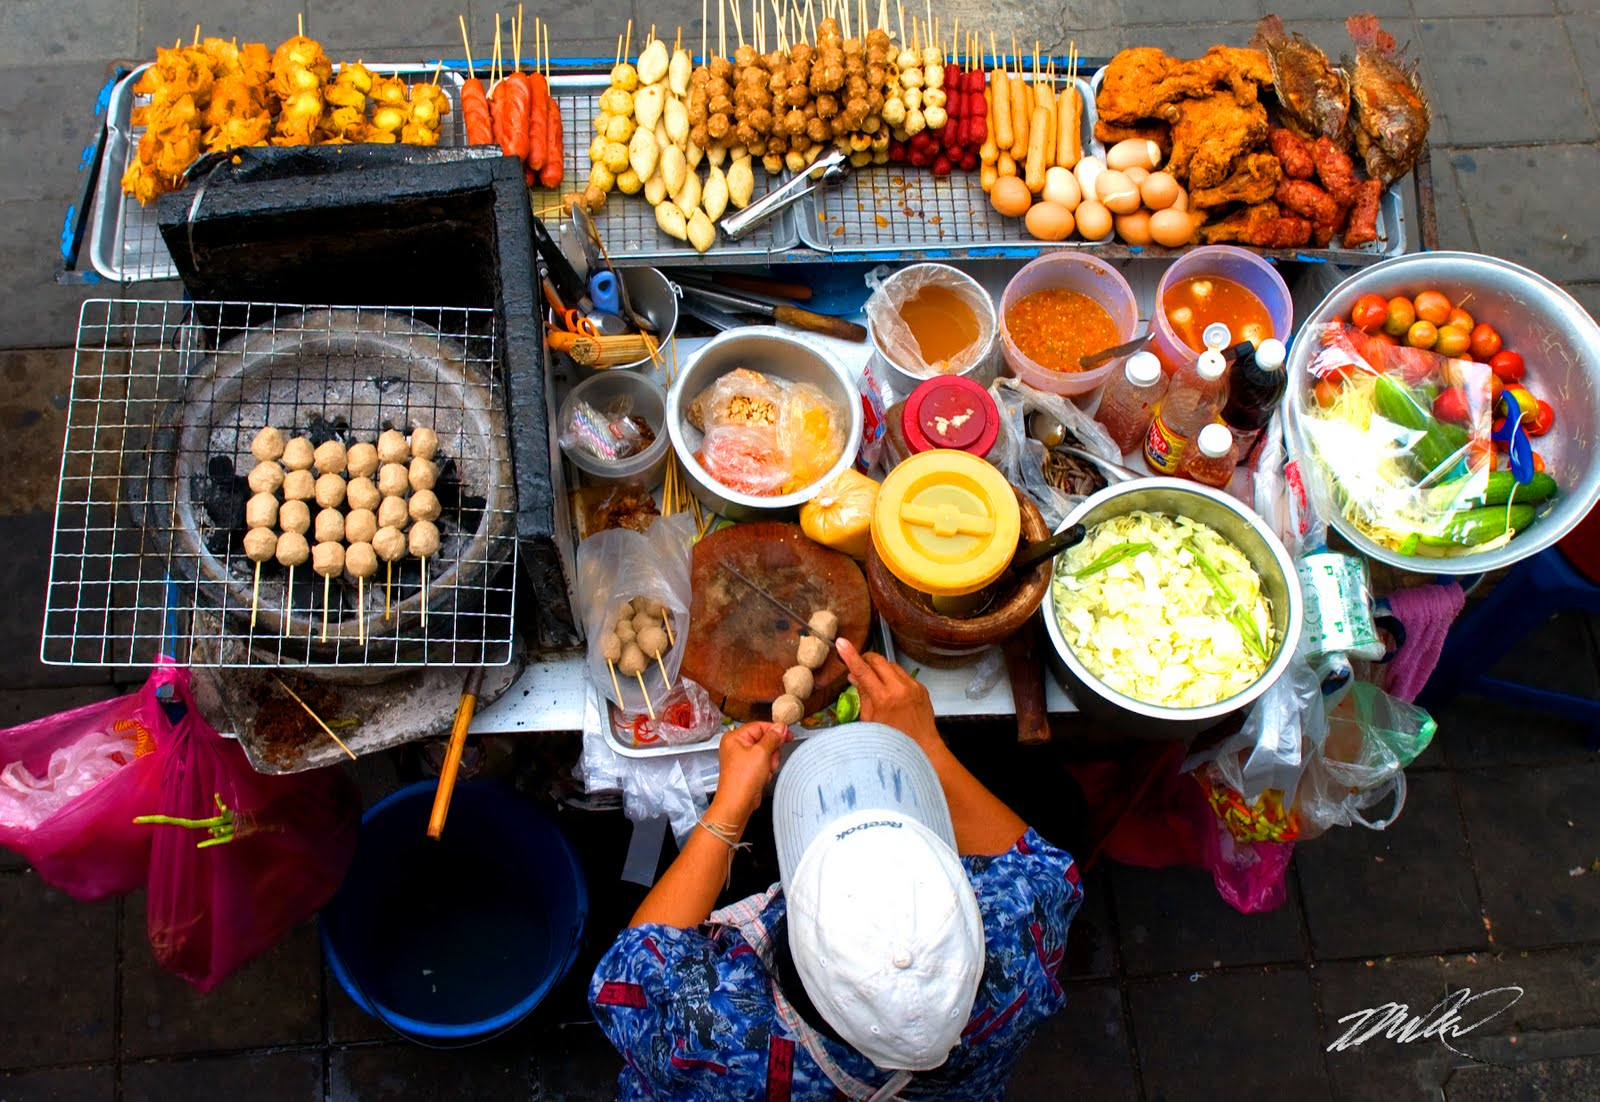 Mauritius street food is said to be amongst the best in the world.